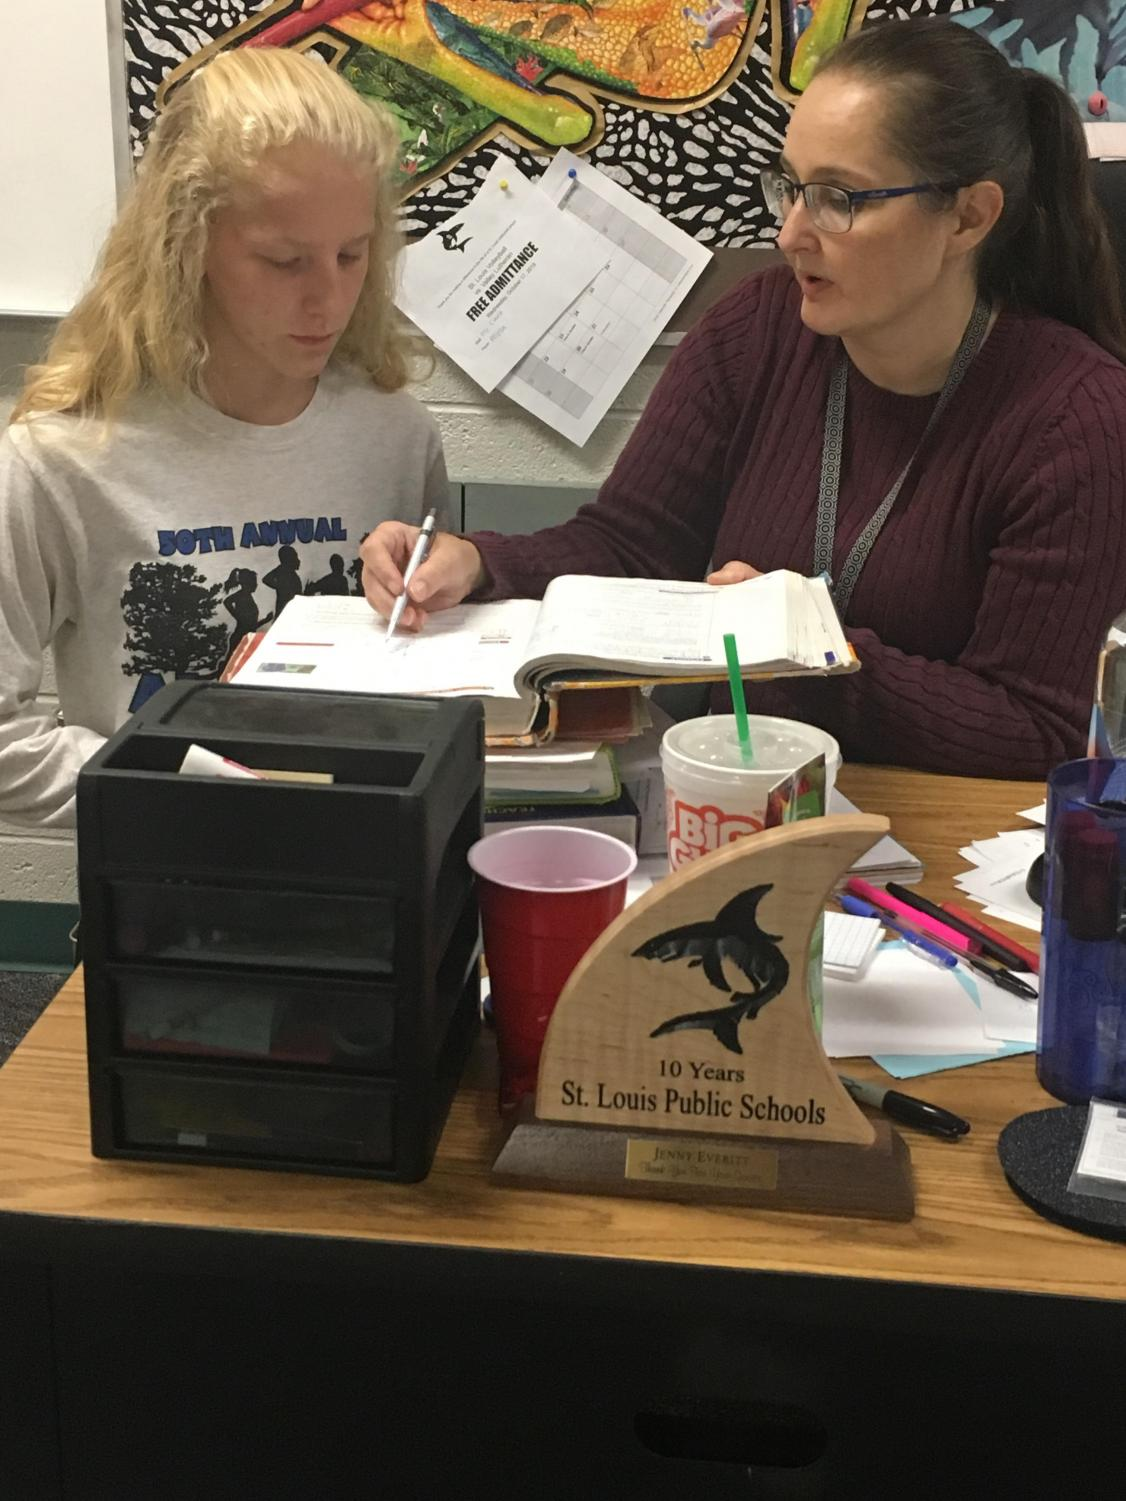 Ms. Everitt helps a student with their classwork.